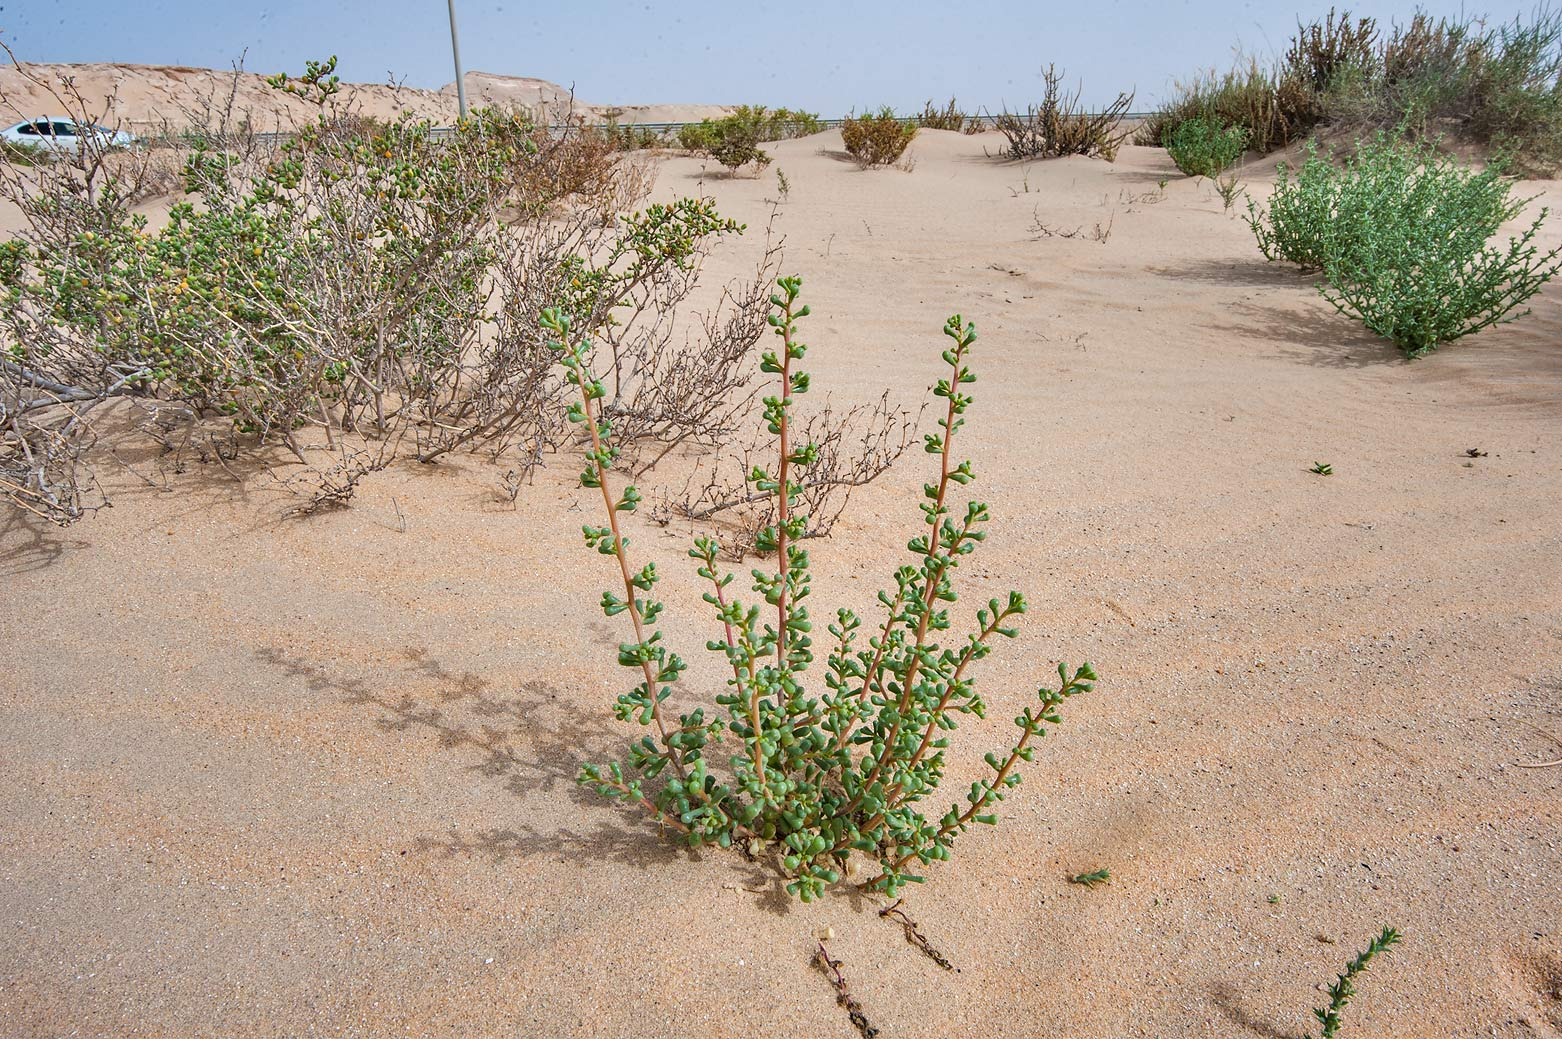 Young bush of Salsola drummondii with club-shaped...area of Rawdat Ekdaim. Southern Qatar